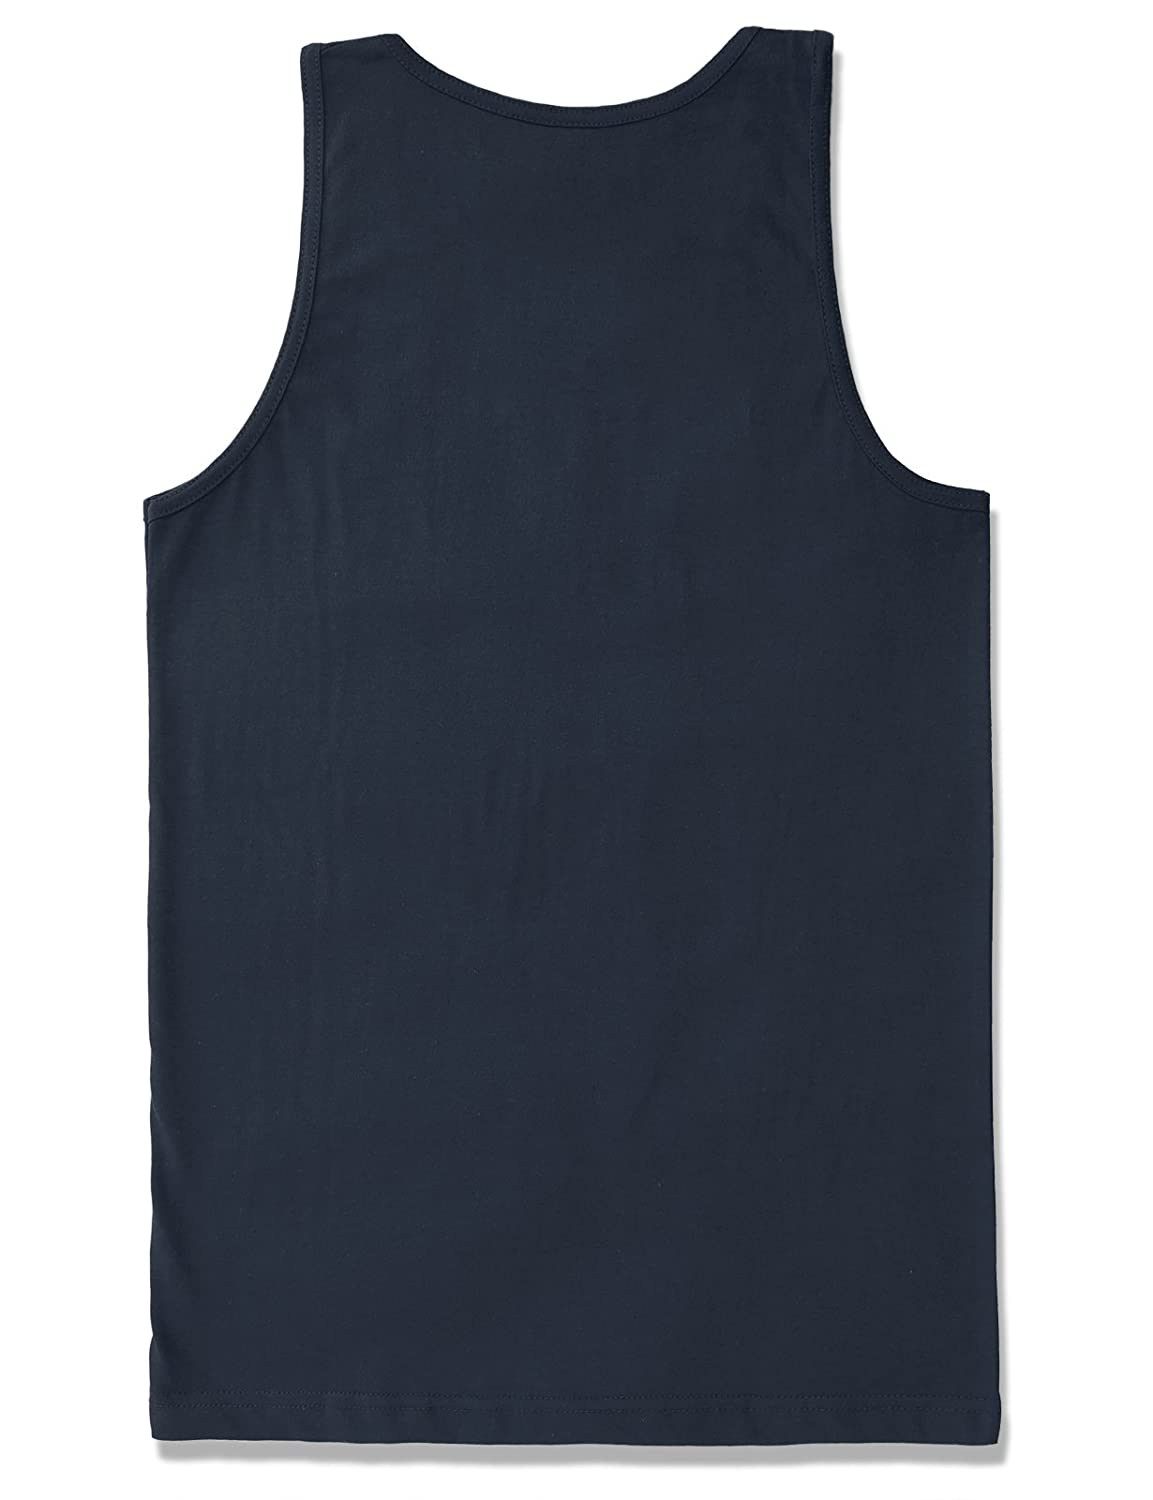 7a4c5cdc375dc JD Apparel Men s Premium Basic Solid Tank Top Jersey Casual Shirts (Size  Upto 3XL  Amazon.ca  Clothing   Accessories